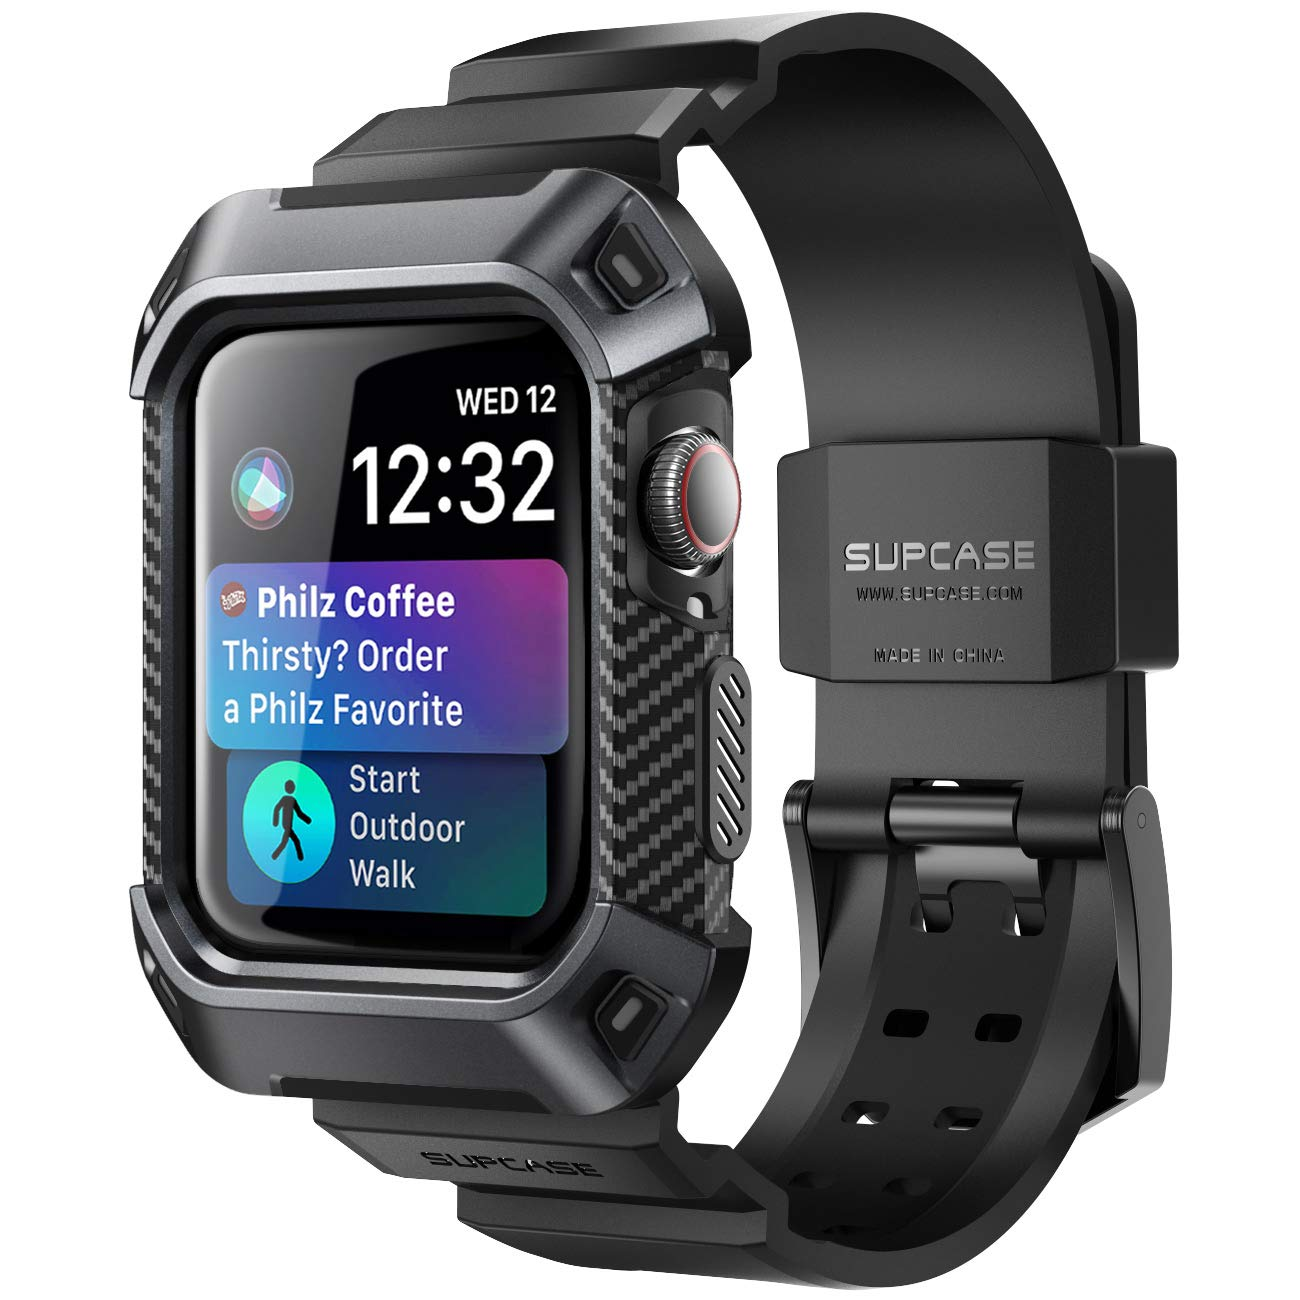 separation shoes de063 48dc4 SUPCASE Rugged Protective Case for Apple Watch 4, 44mm 2018, with Strap  Bands for Apple Watch Series 4 [Unicorn Beetle Pro] (Black)